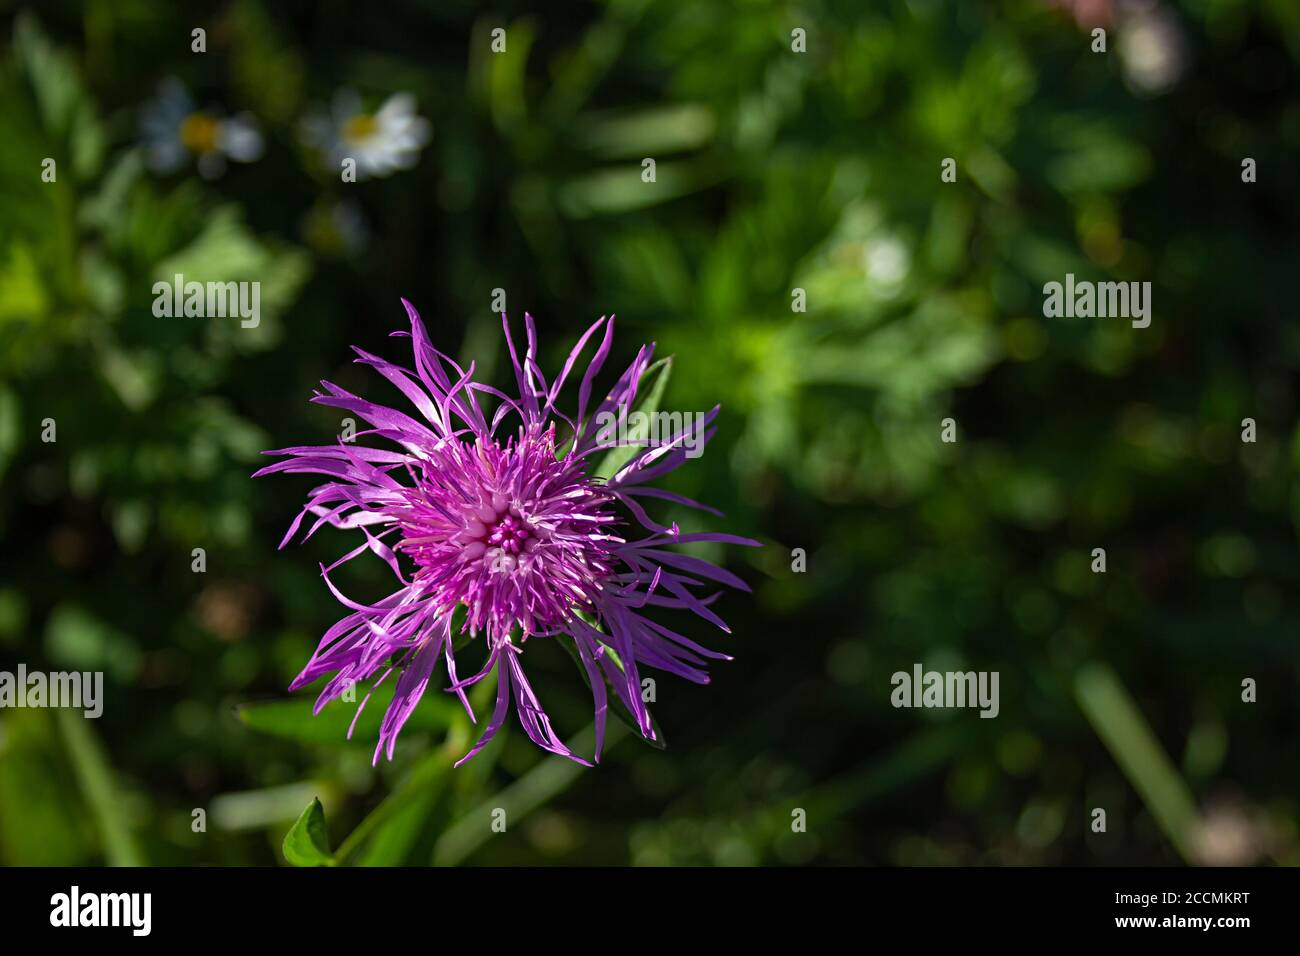 Knapweed Seed Head High Resolution Stock Photography And Images Alamy